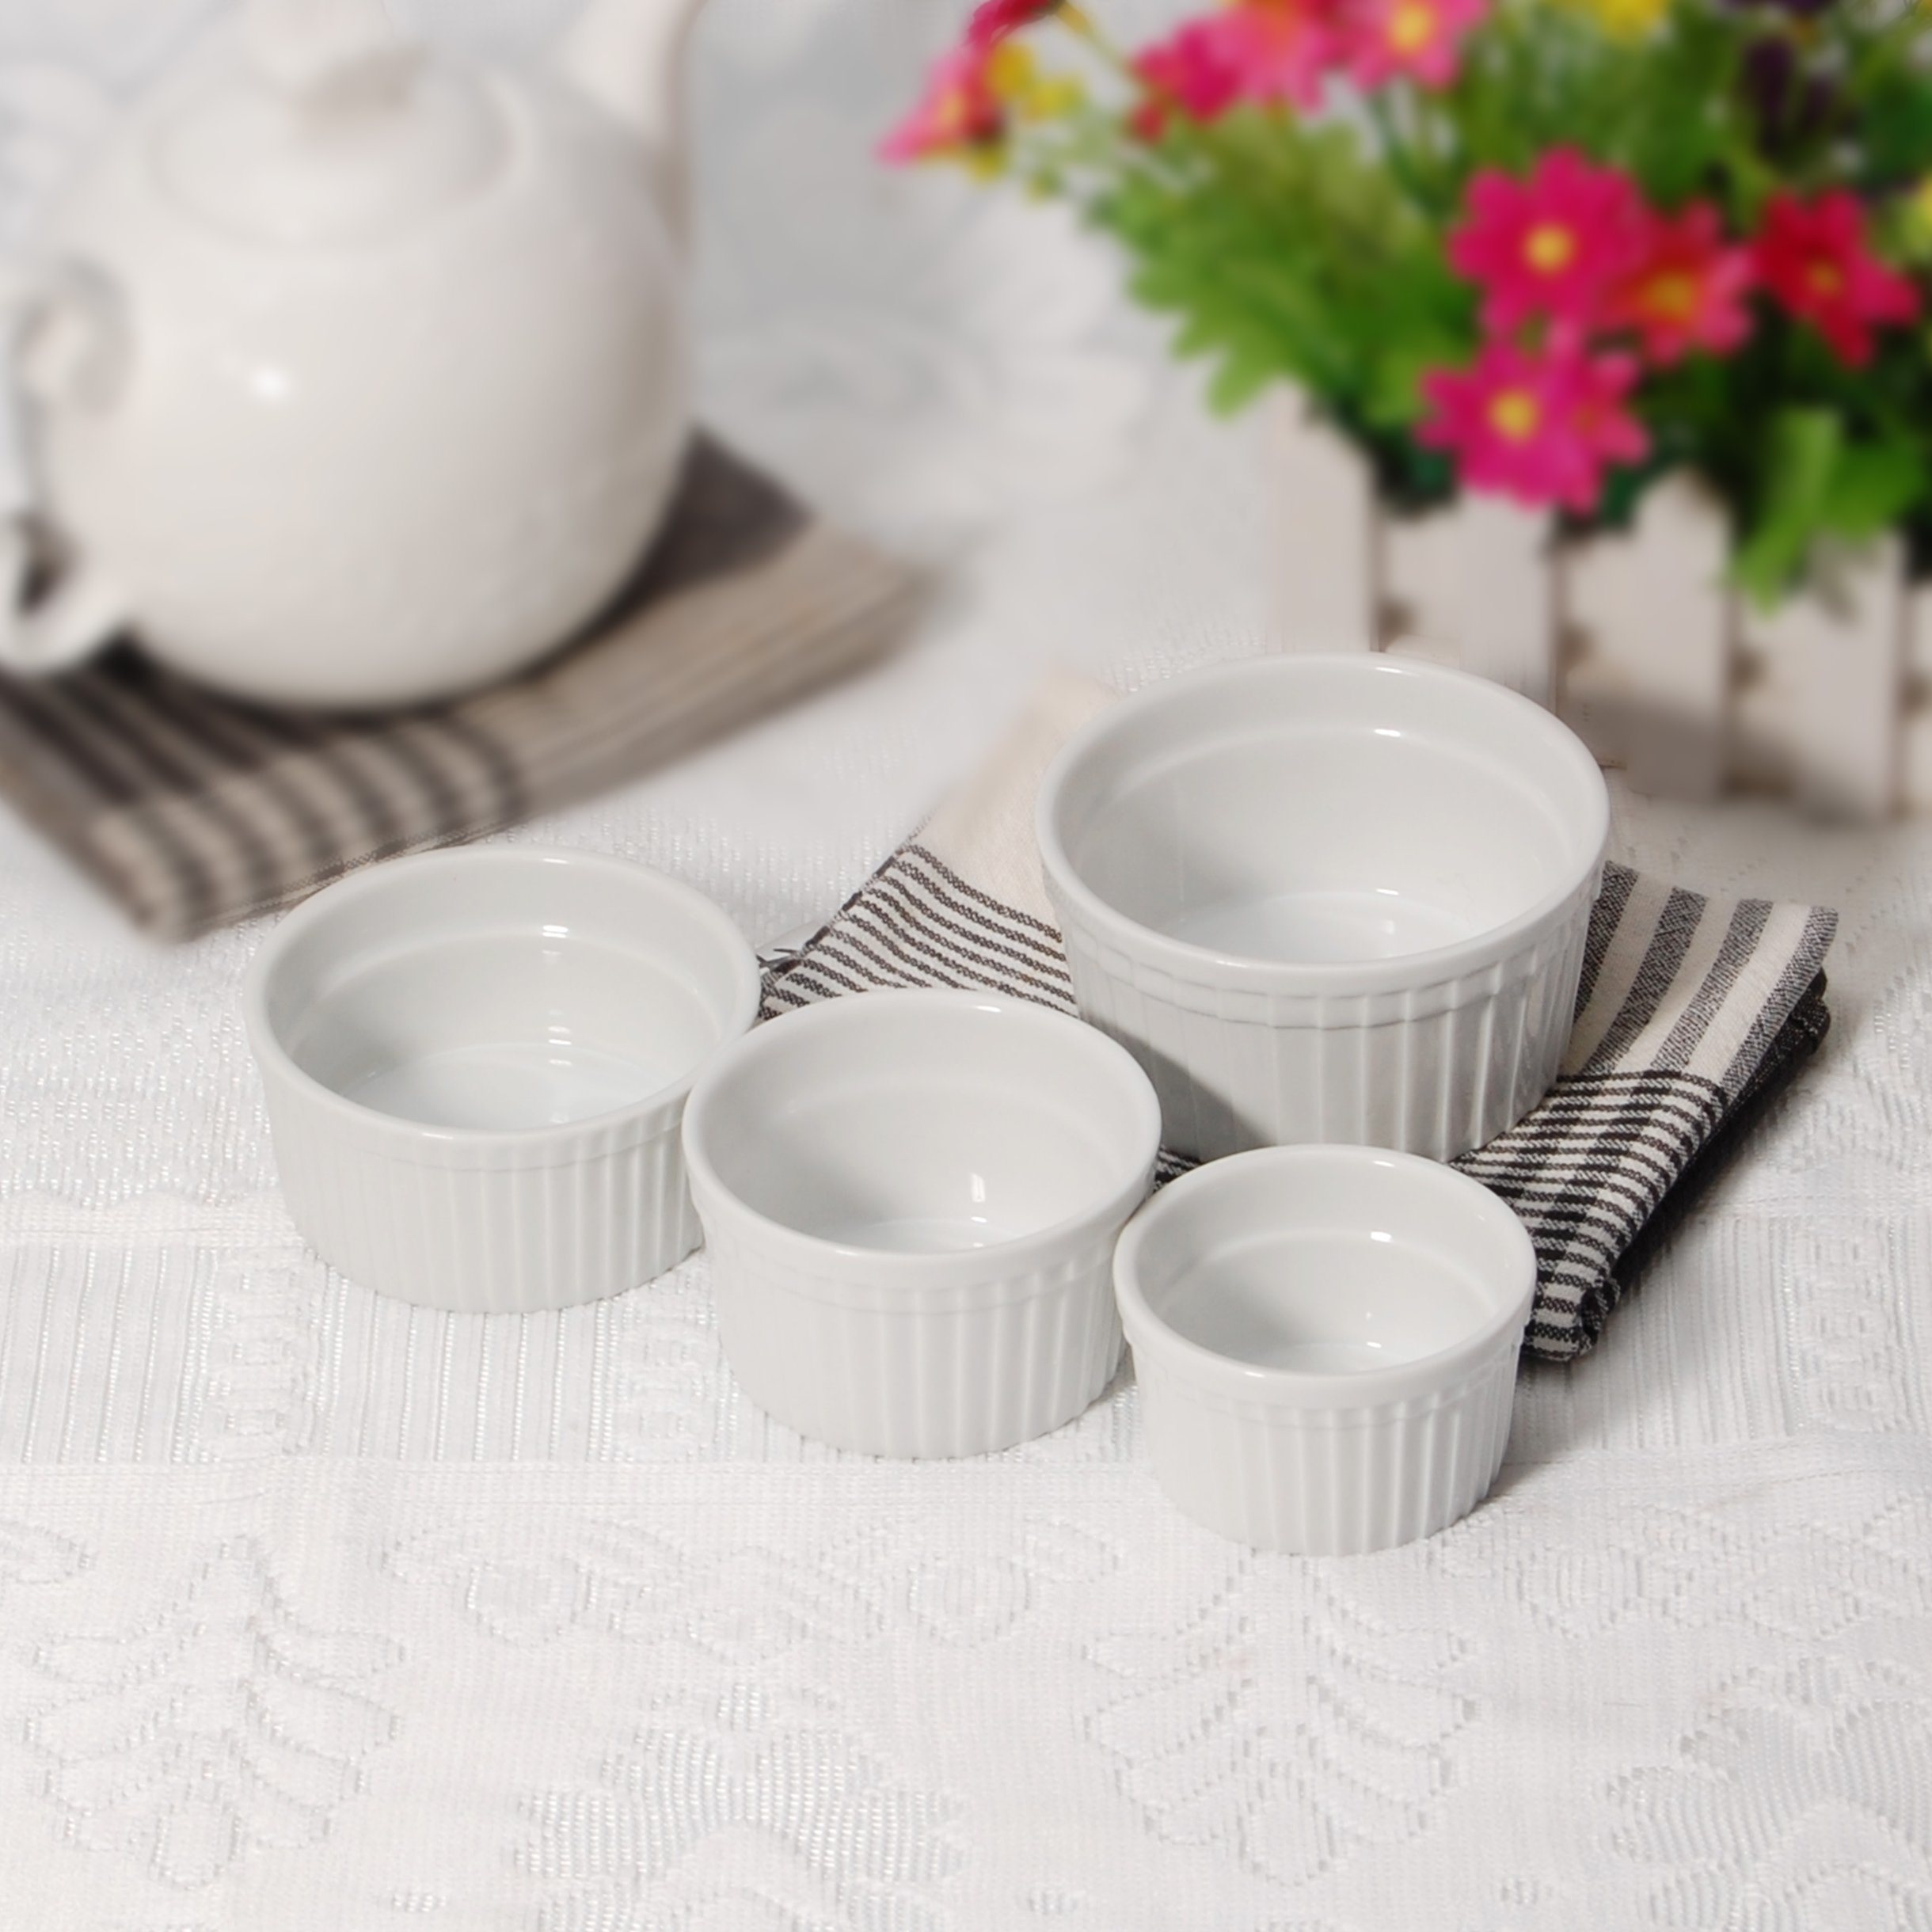 China Wholesale Kitchenware, Porcelain Hotel Round Bowl of All Sizes